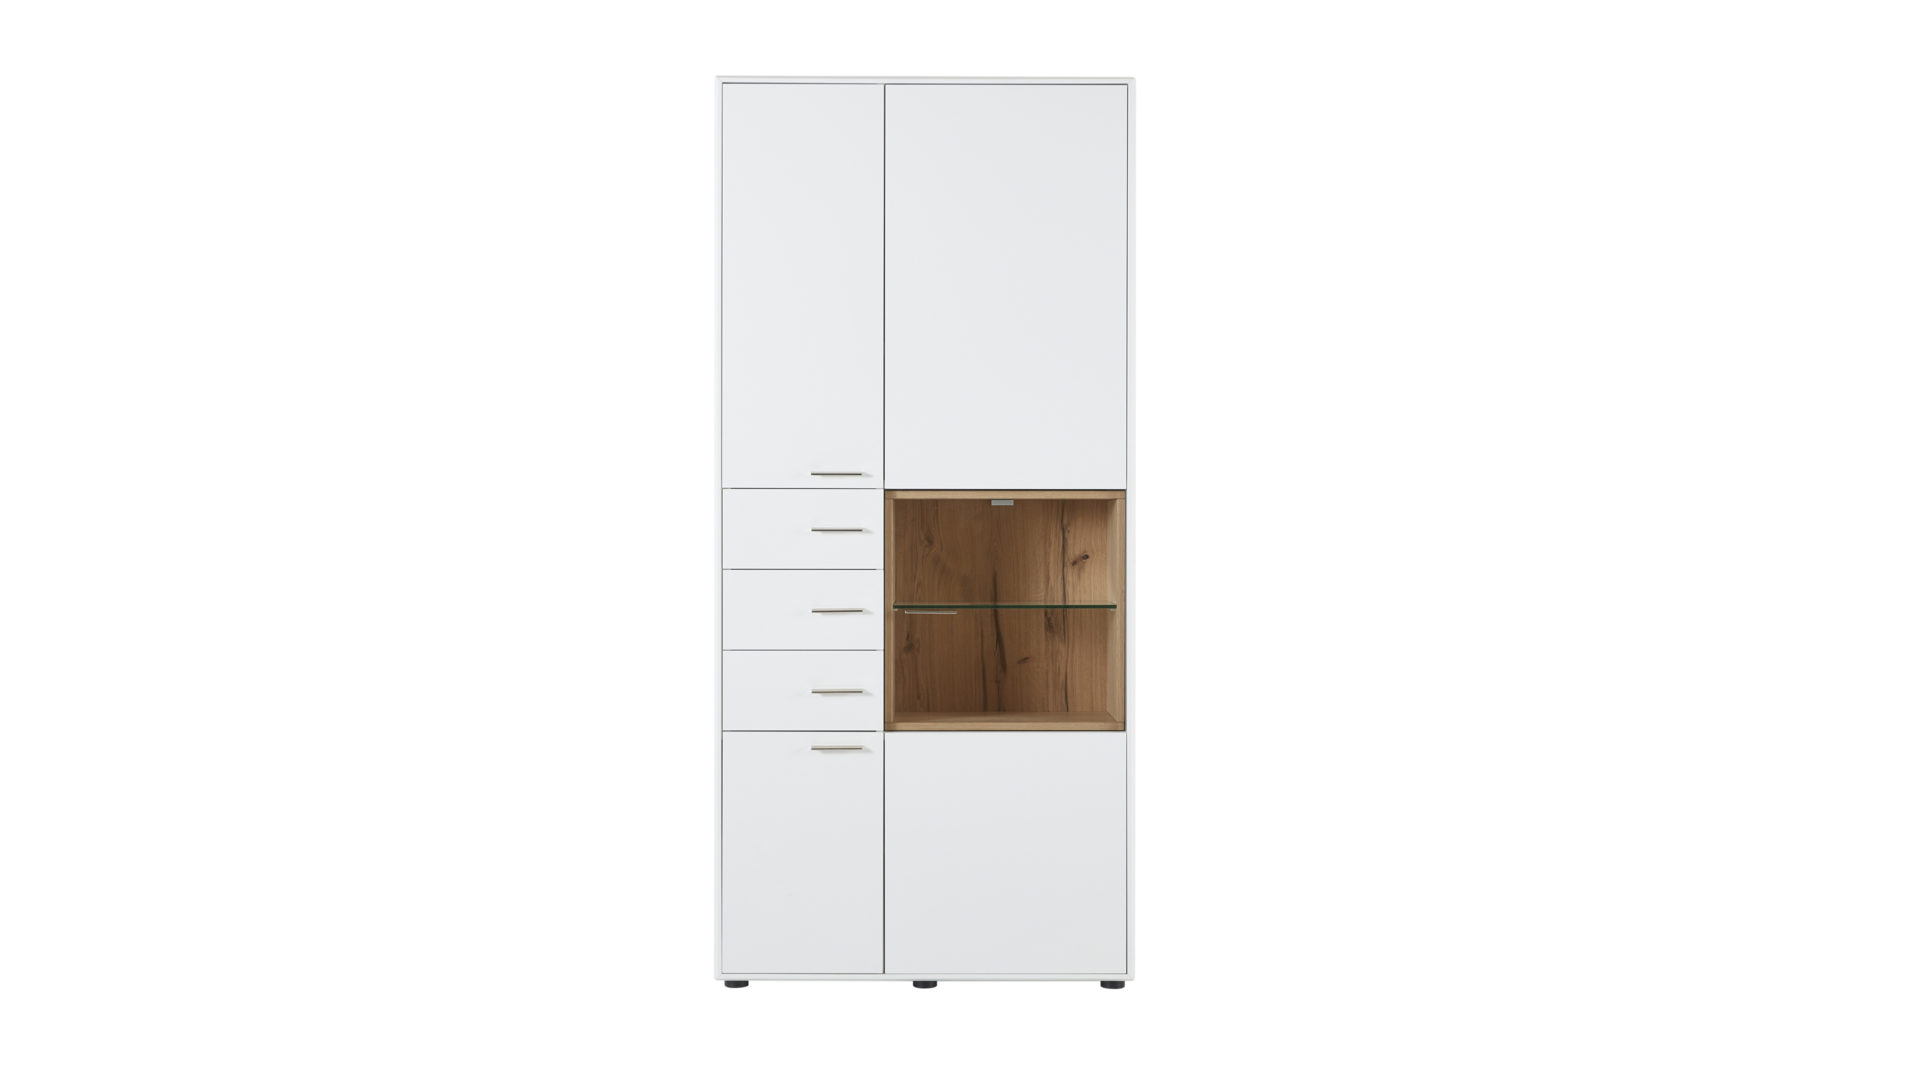 Mobelhaus Thiex Gmbh Interliving Esszimmer Sideboards